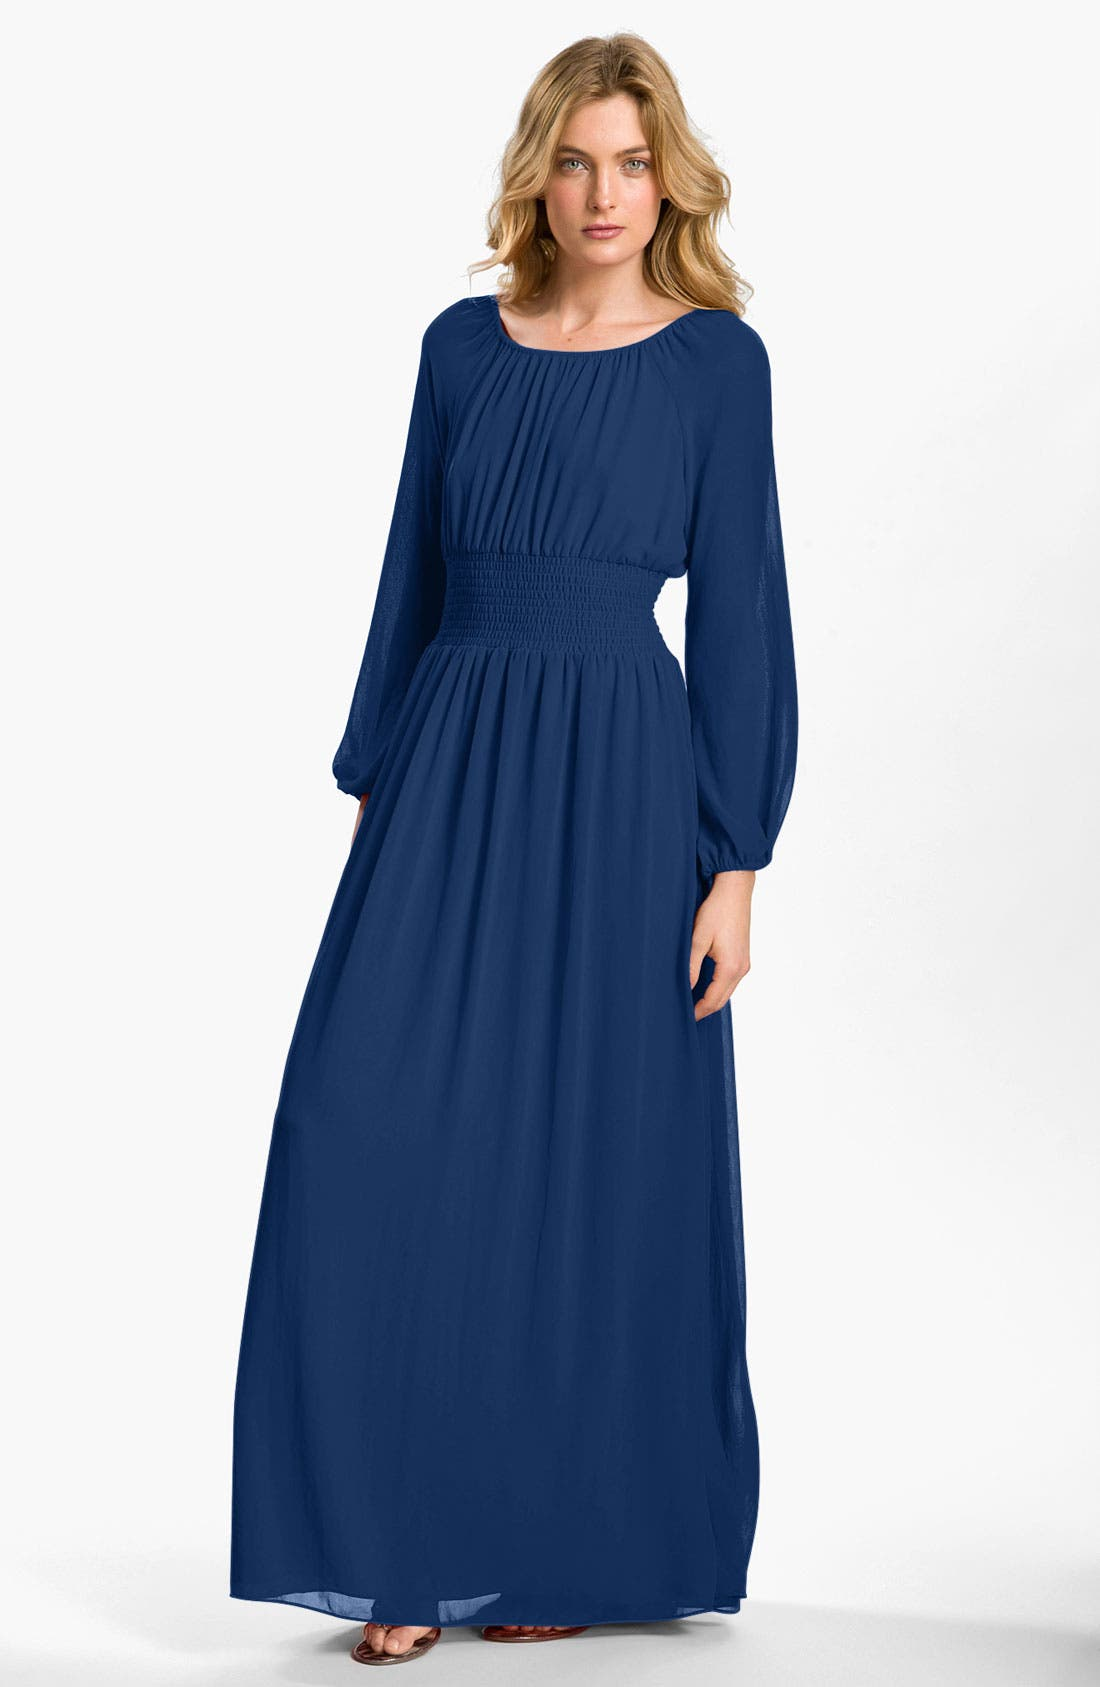 Alternate Image 1 Selected - Adrianna Papell Smocked Chiffon Maxi Dress